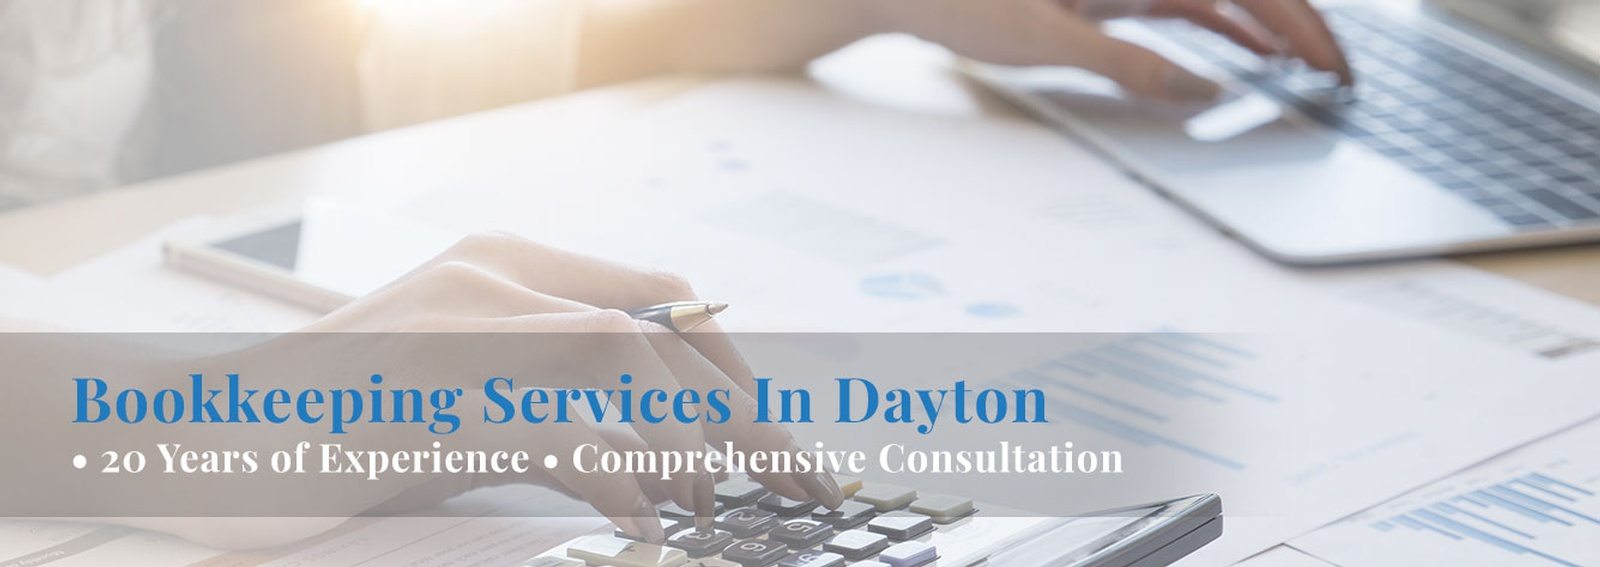 Accounting Services Dayton